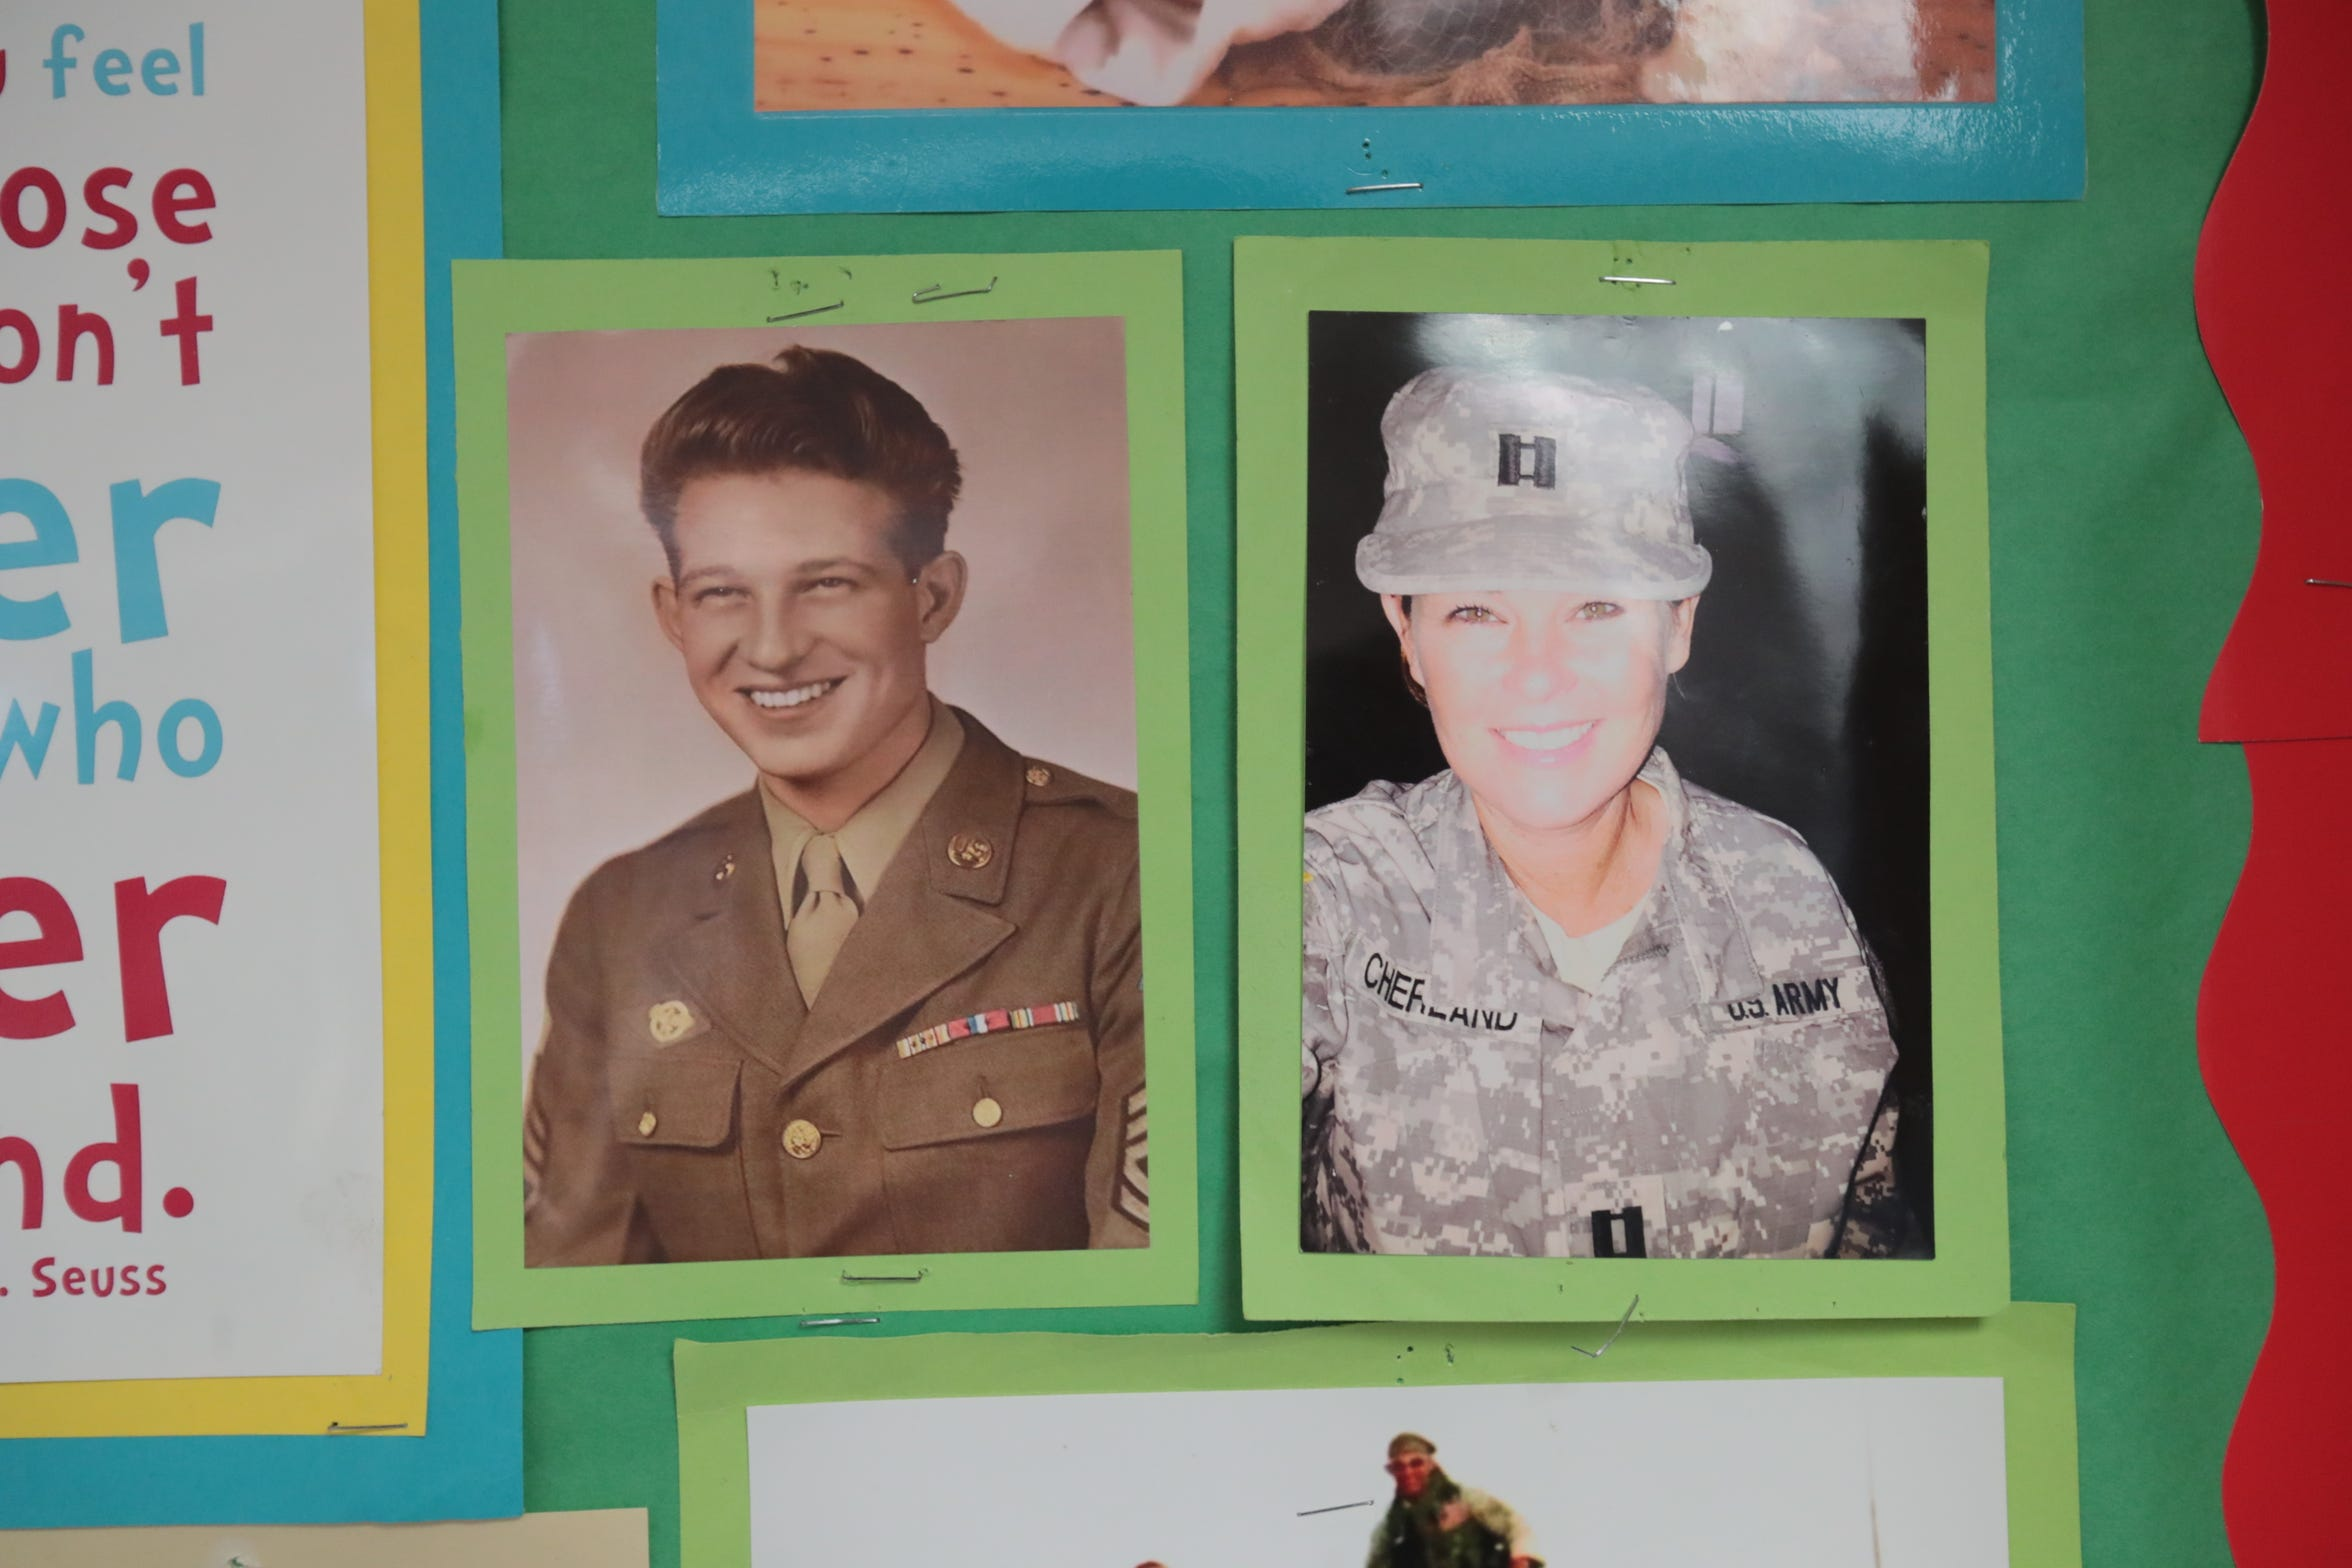 Photo of retired U.S. Army Reserve Capt. Michelle Cherland and her grandfather hangs in her class room on Wednesday, November 7, 2018 in Palm Desert.